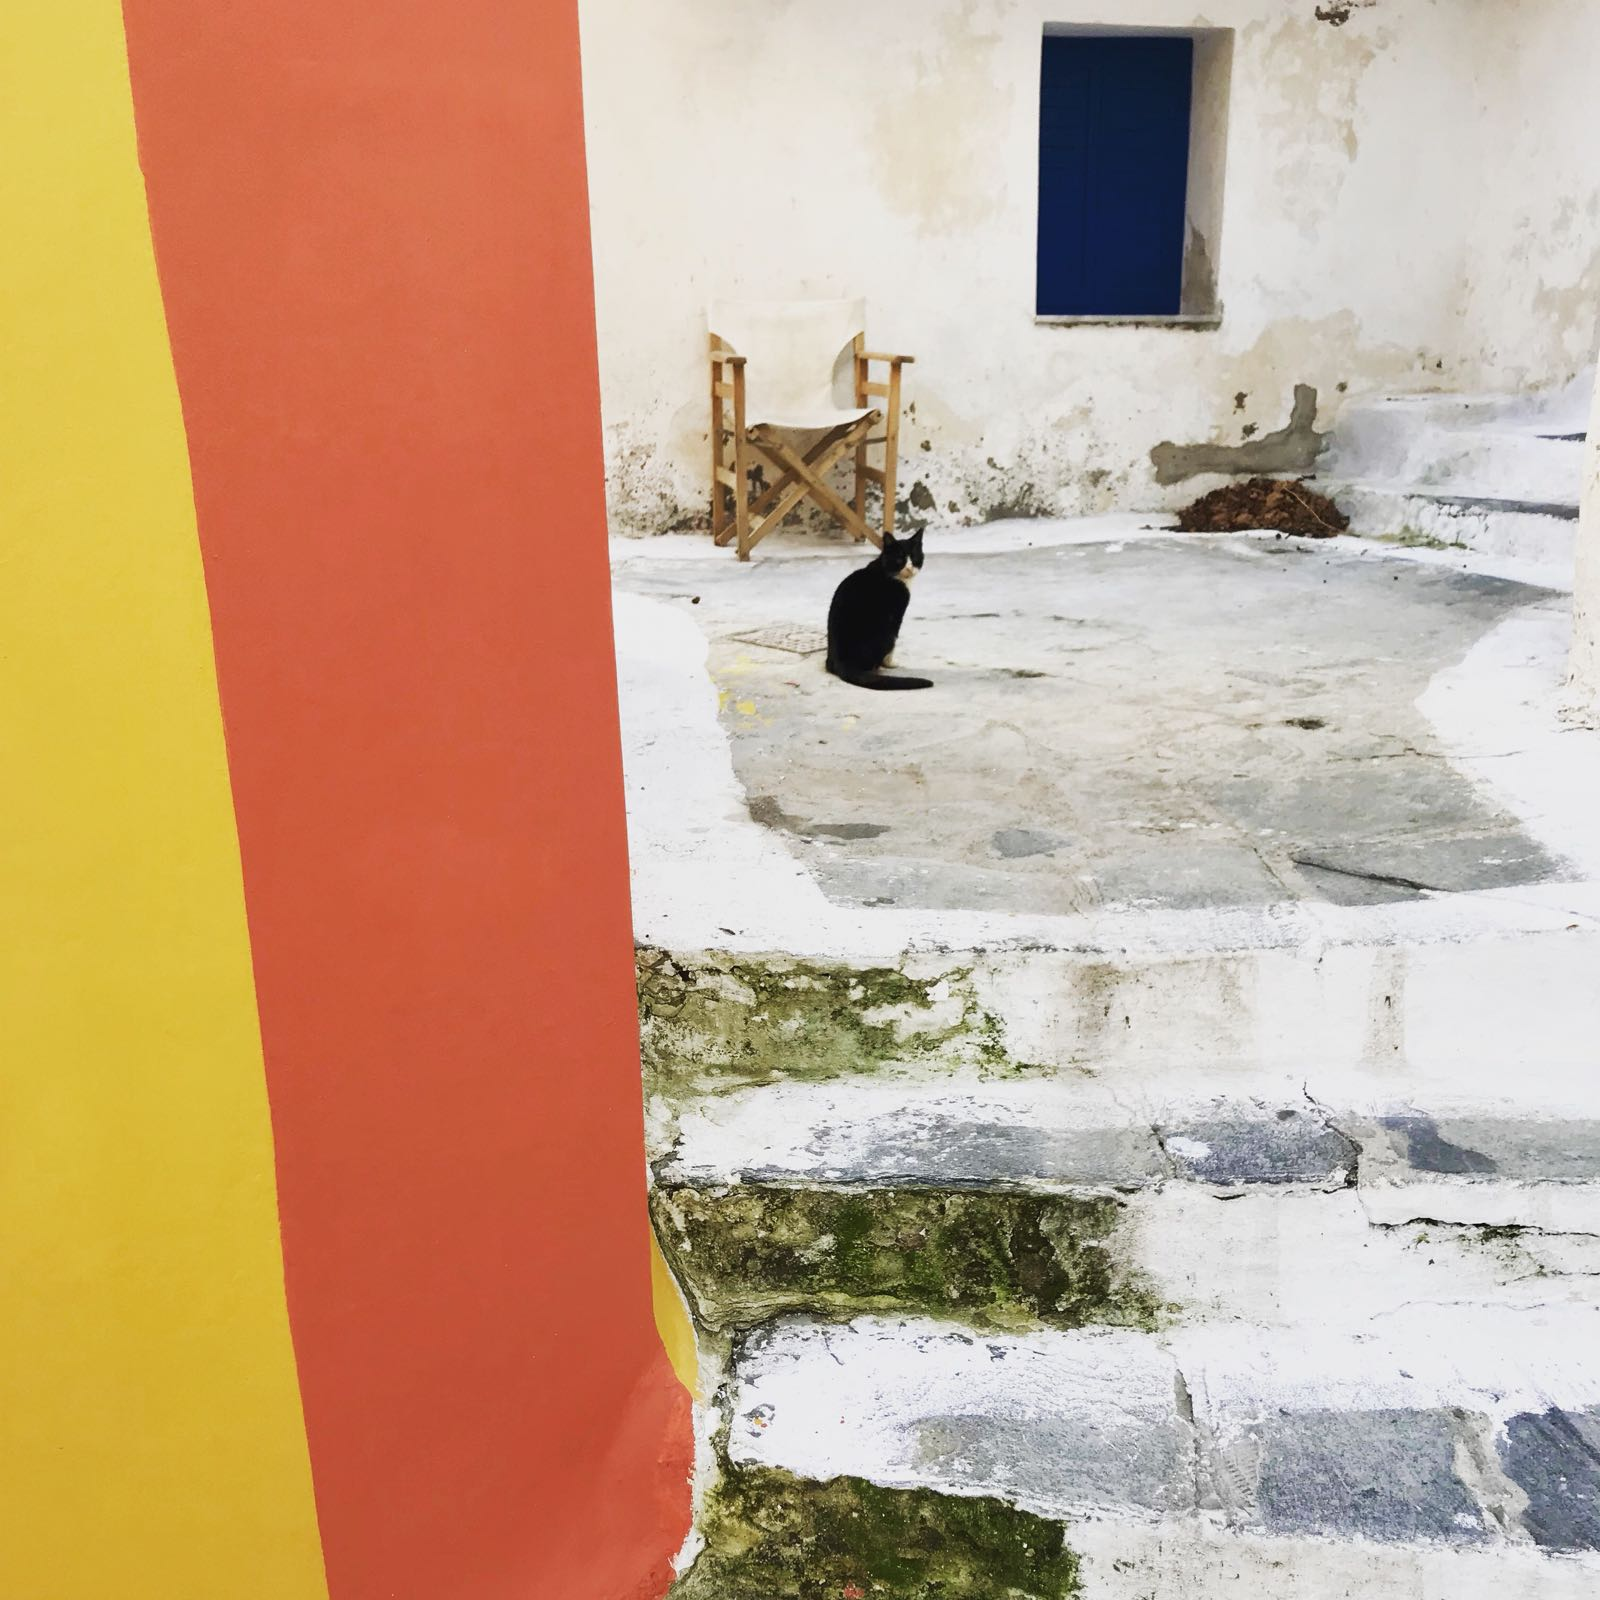 Pathway in Chora winding past a yellow and orange house with a cat in shot